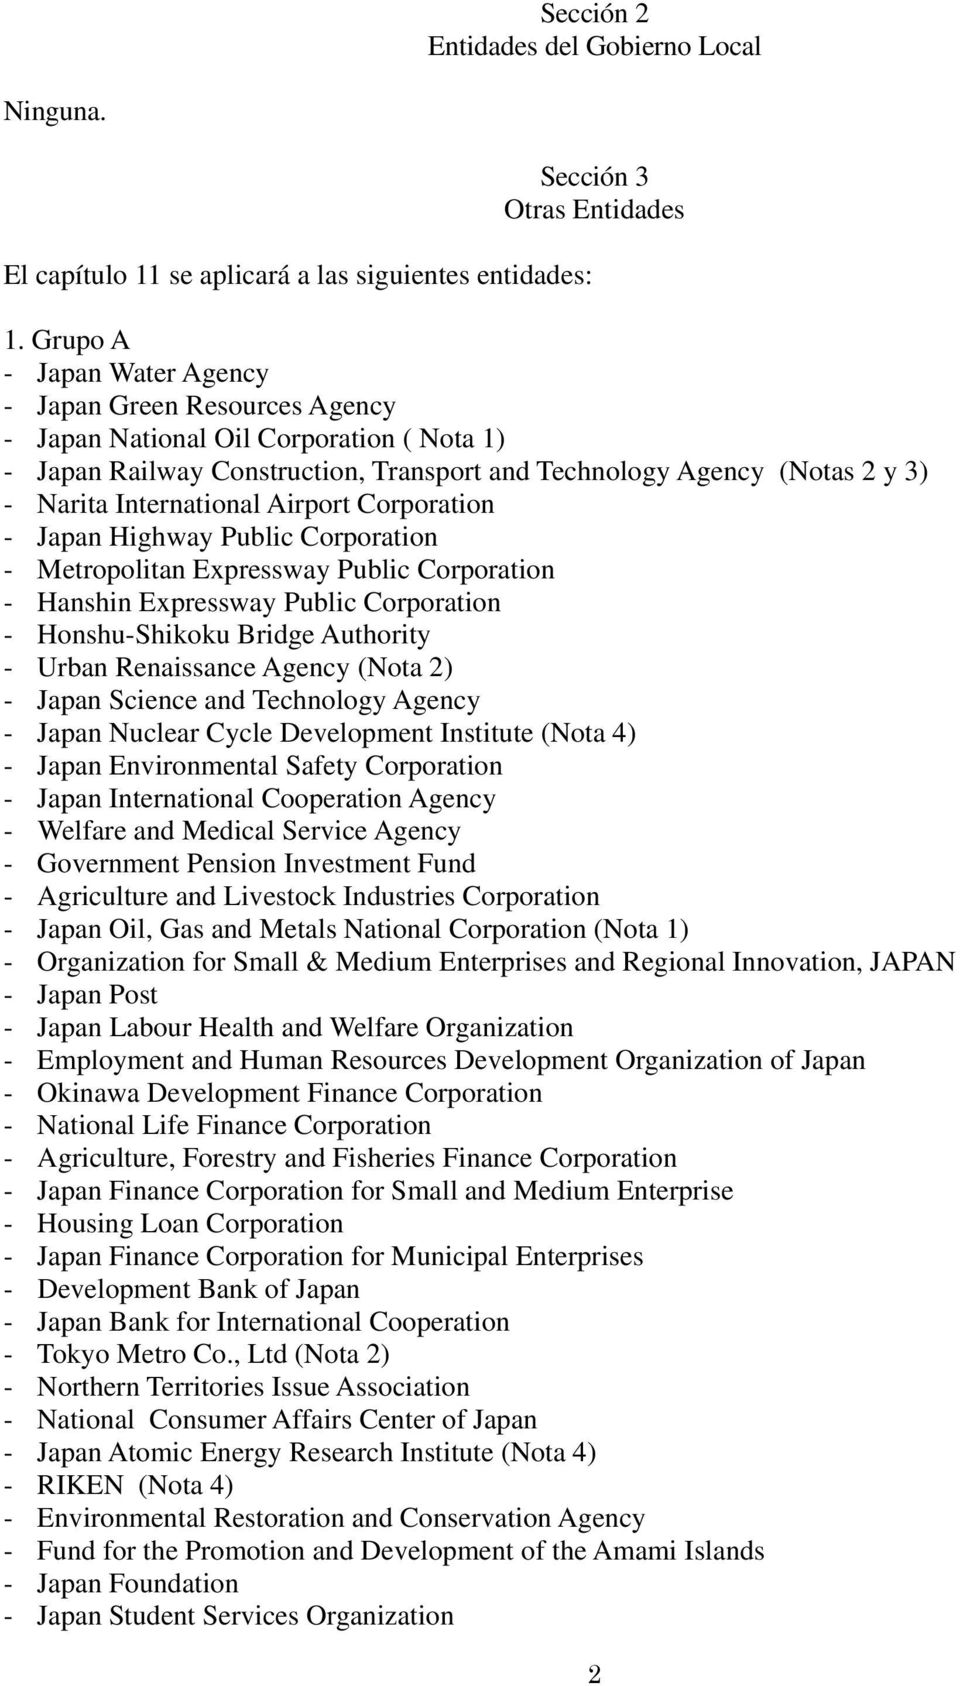 International Airport Corporation - Japan Highway Public Corporation - Metropolitan Expressway Public Corporation - Hanshin Expressway Public Corporation - Honshu-Shikoku Bridge Authority - Urban